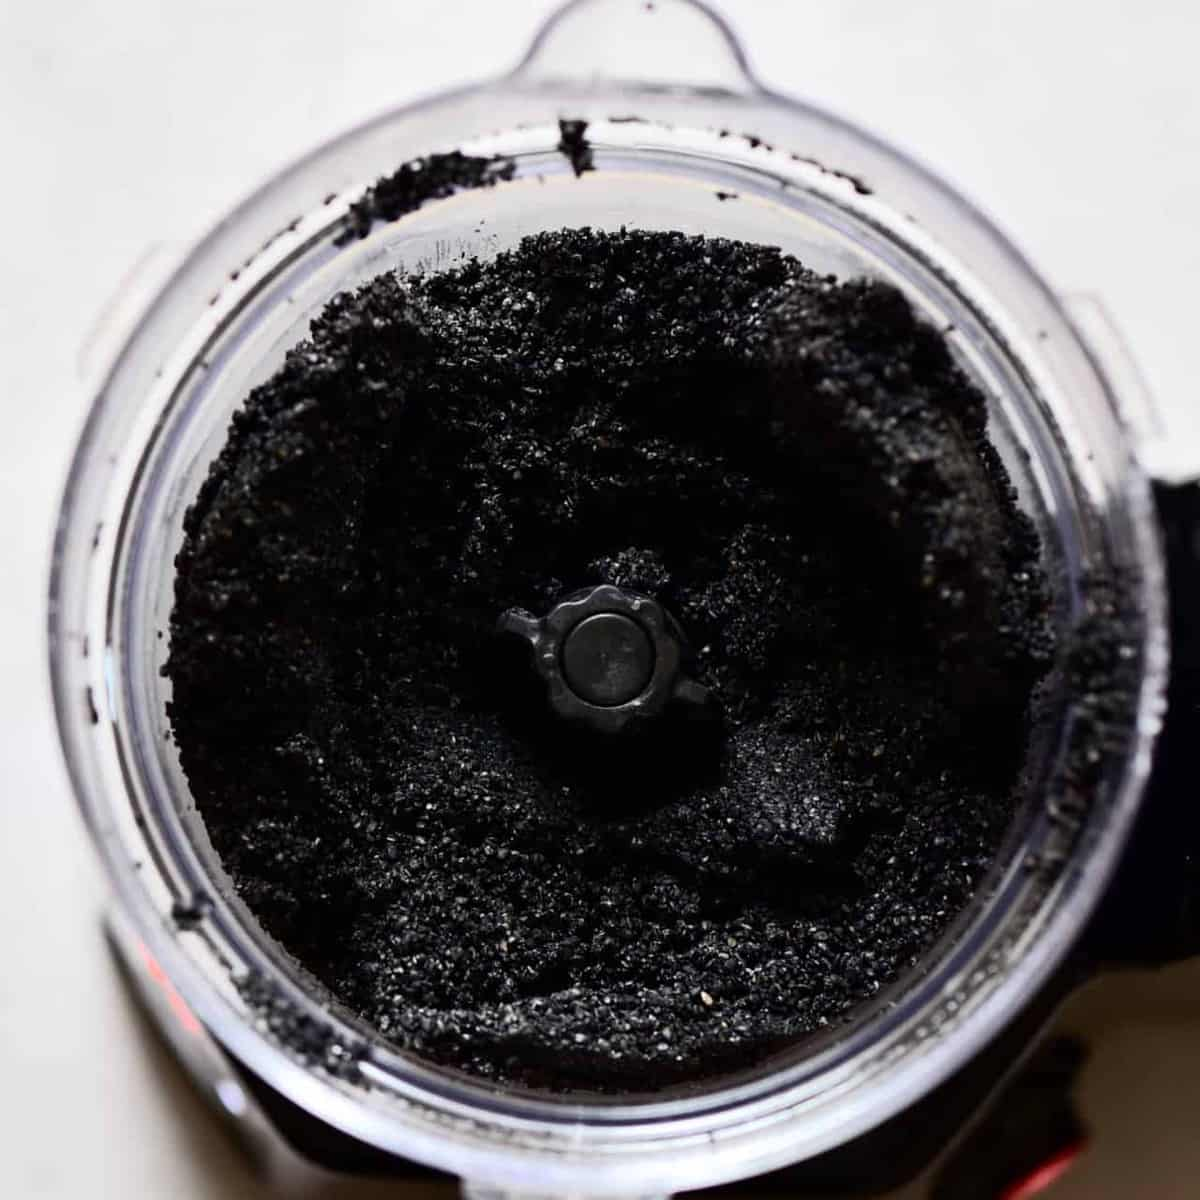 grinding black sesame seeds in food processor